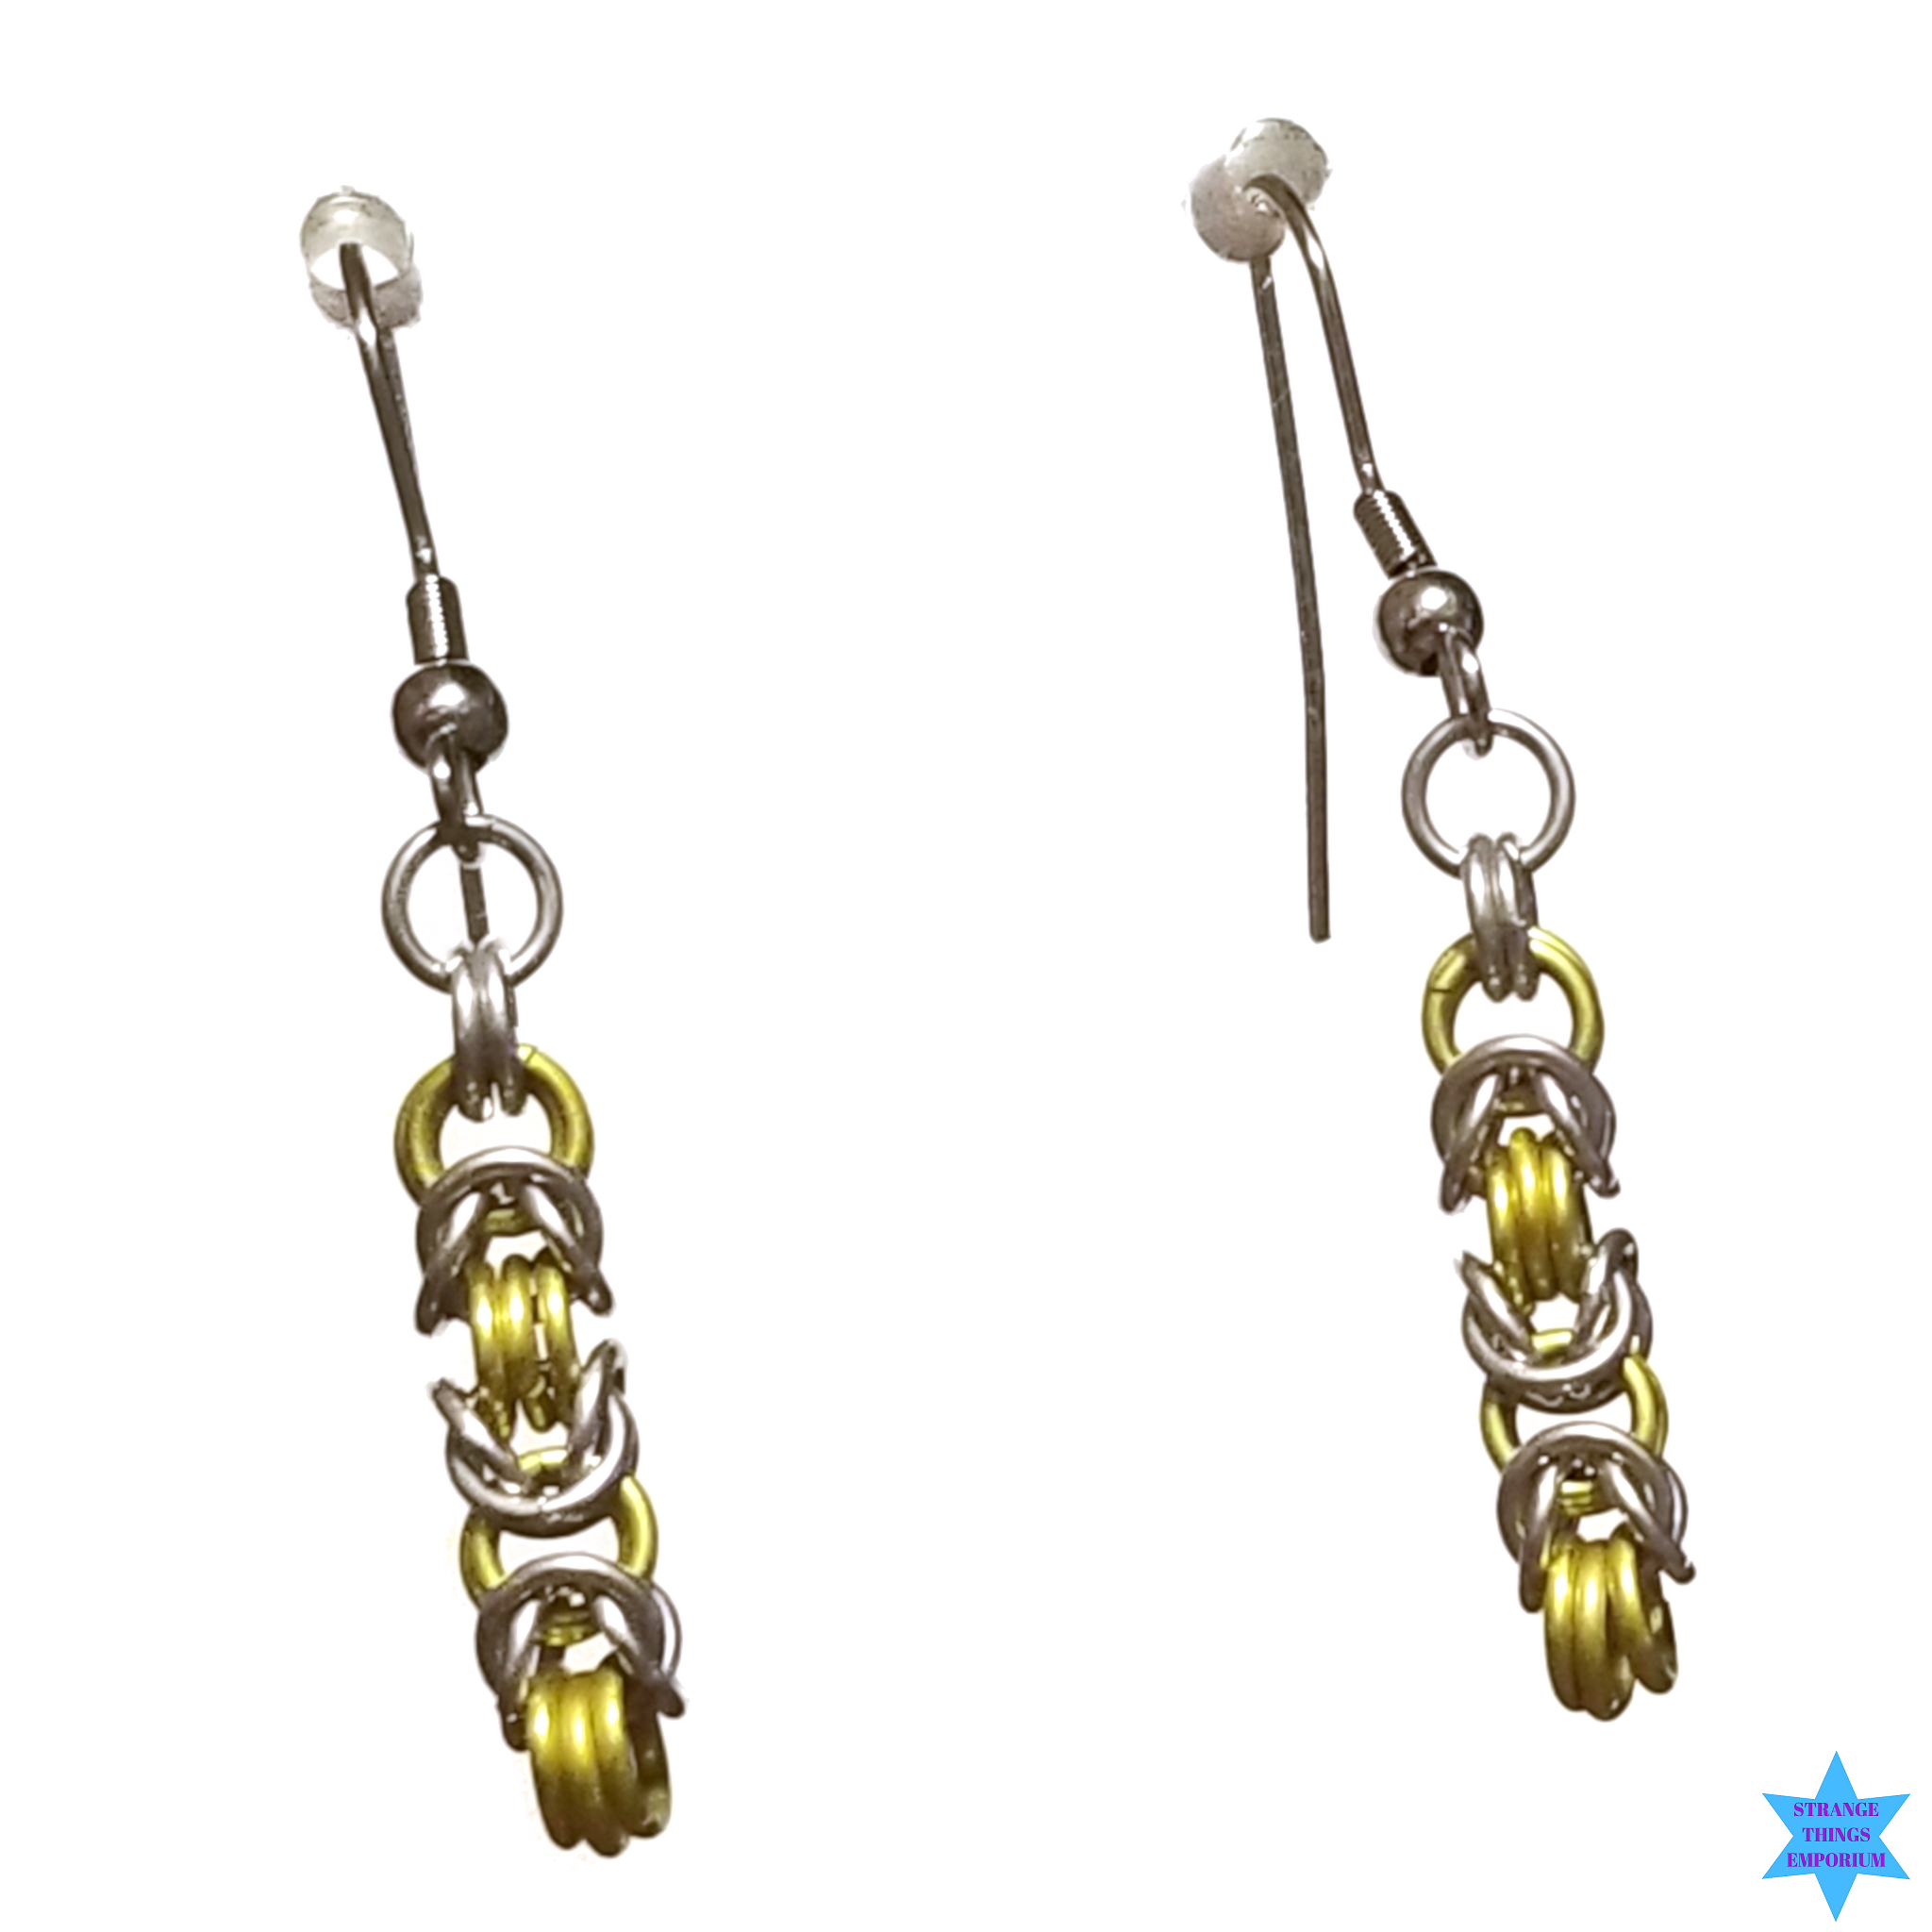 Chainism Earrings - Strange Things Emporium